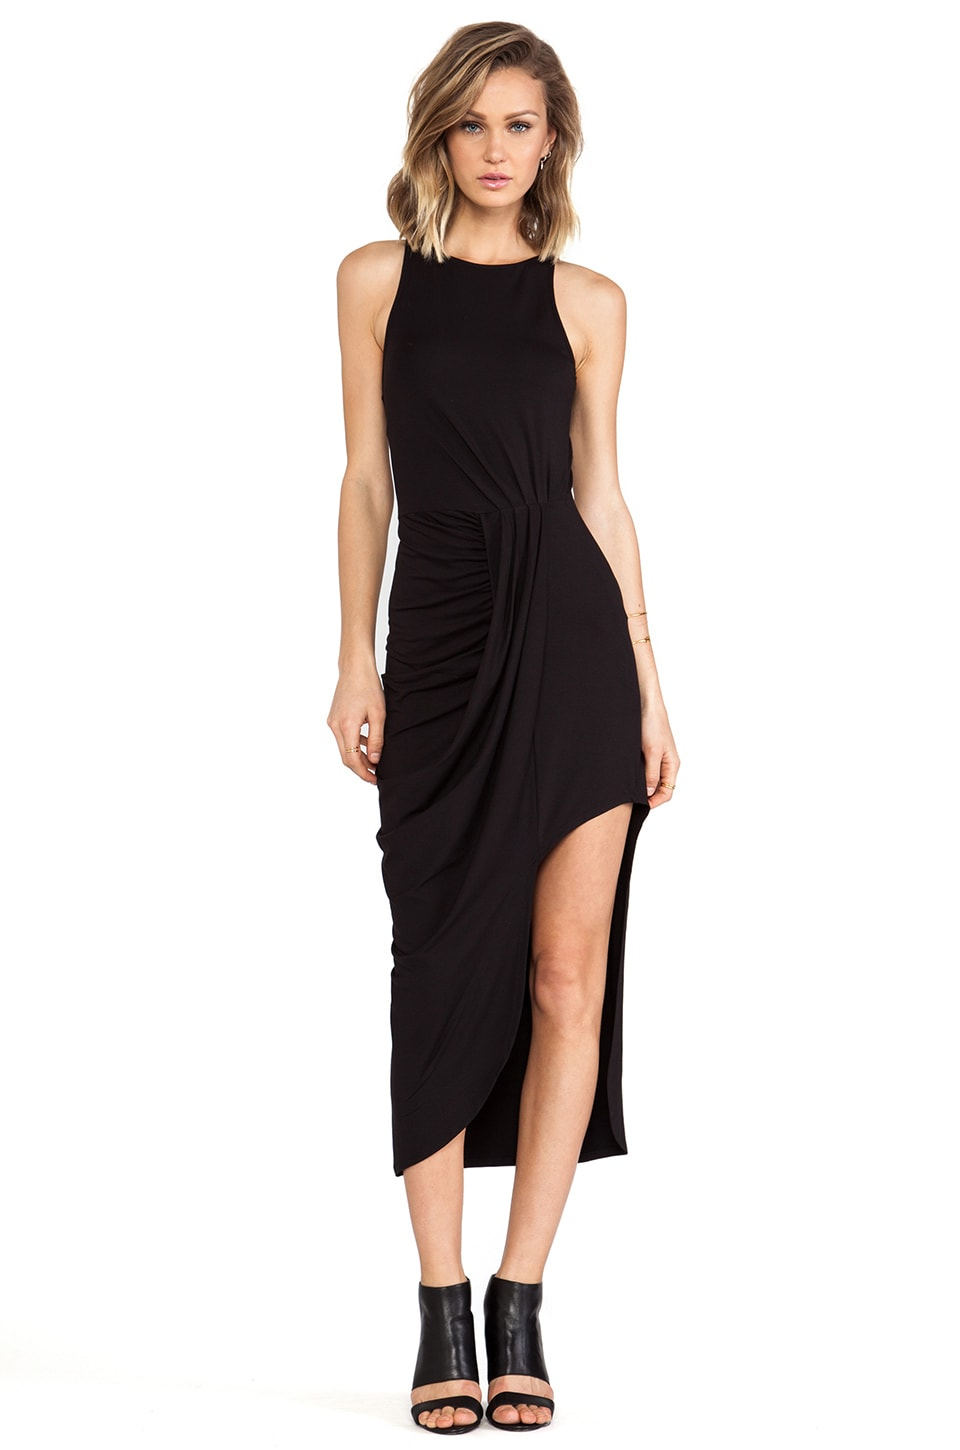 bless'ed are the meek Flow Dress in Black